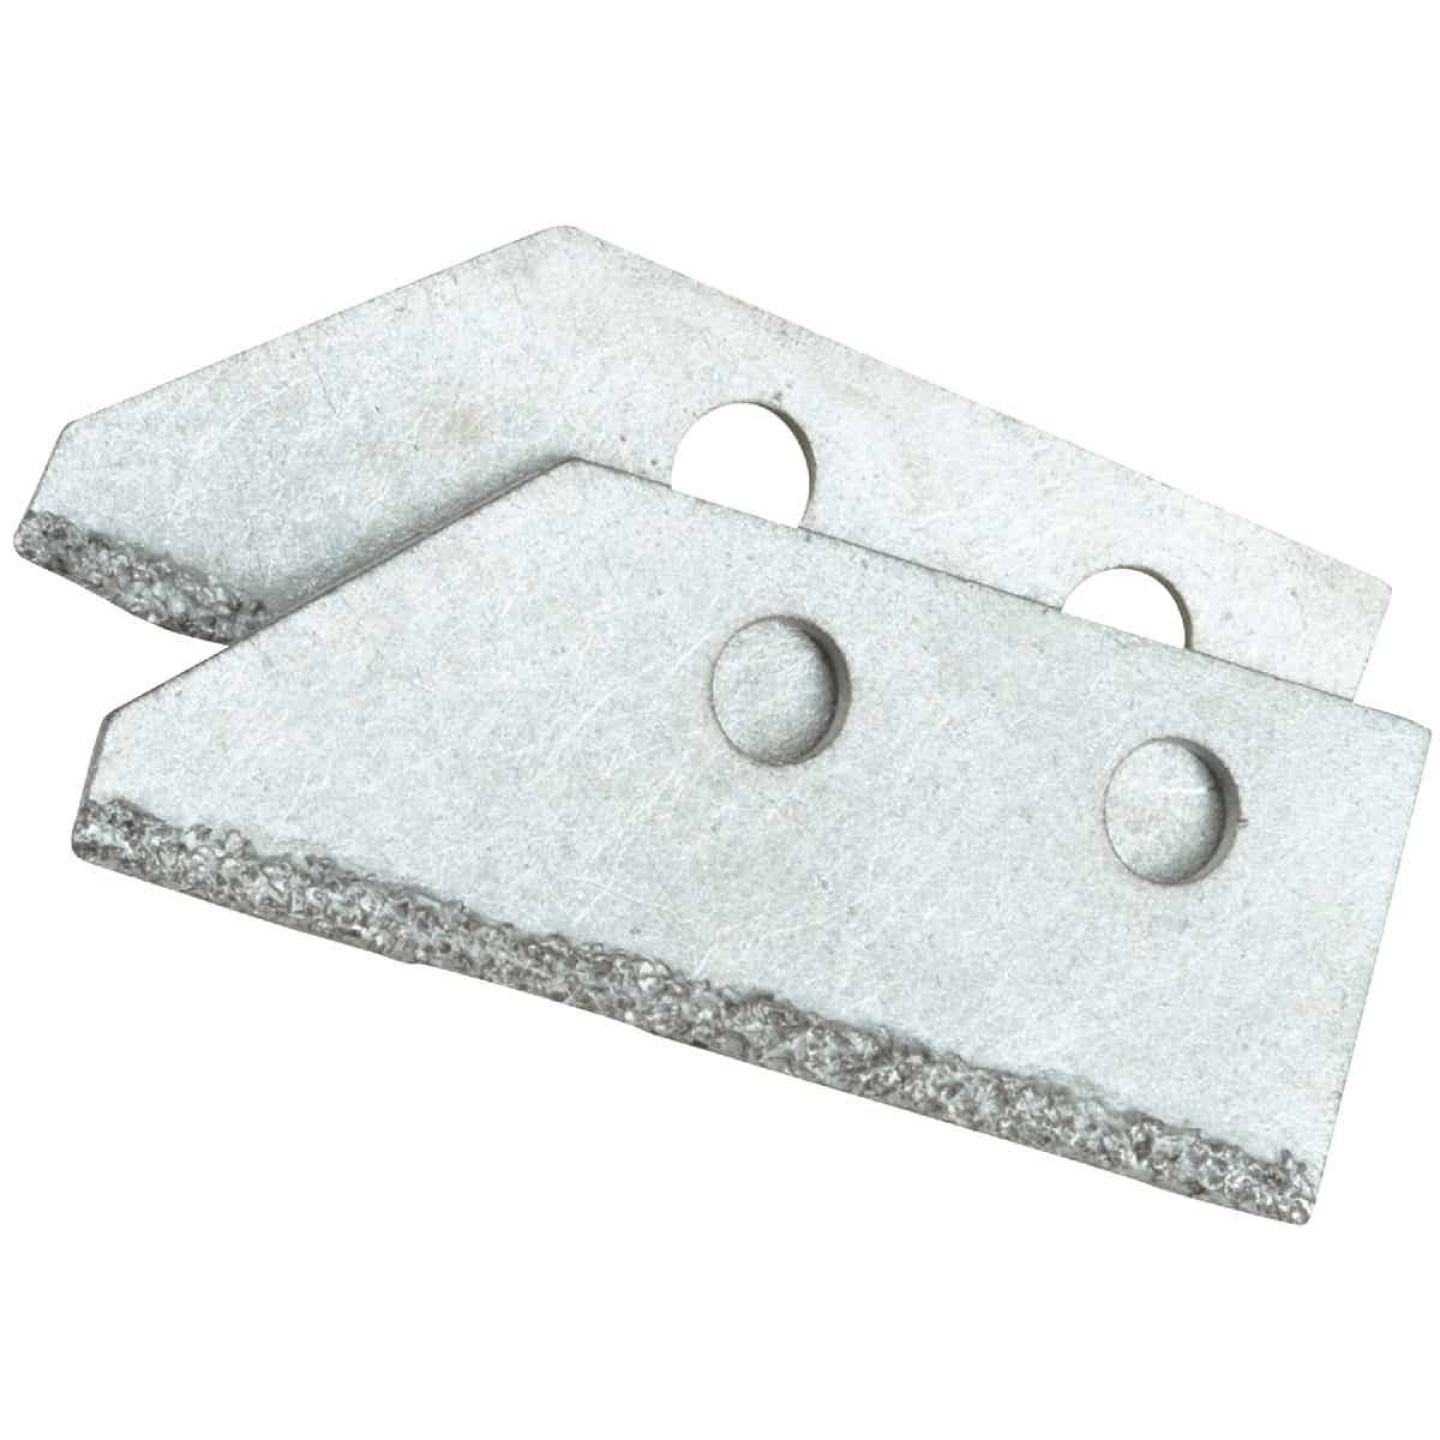 Do it Best Tungsten Carbide Grout Saw Blade (2-Pack) Image 1